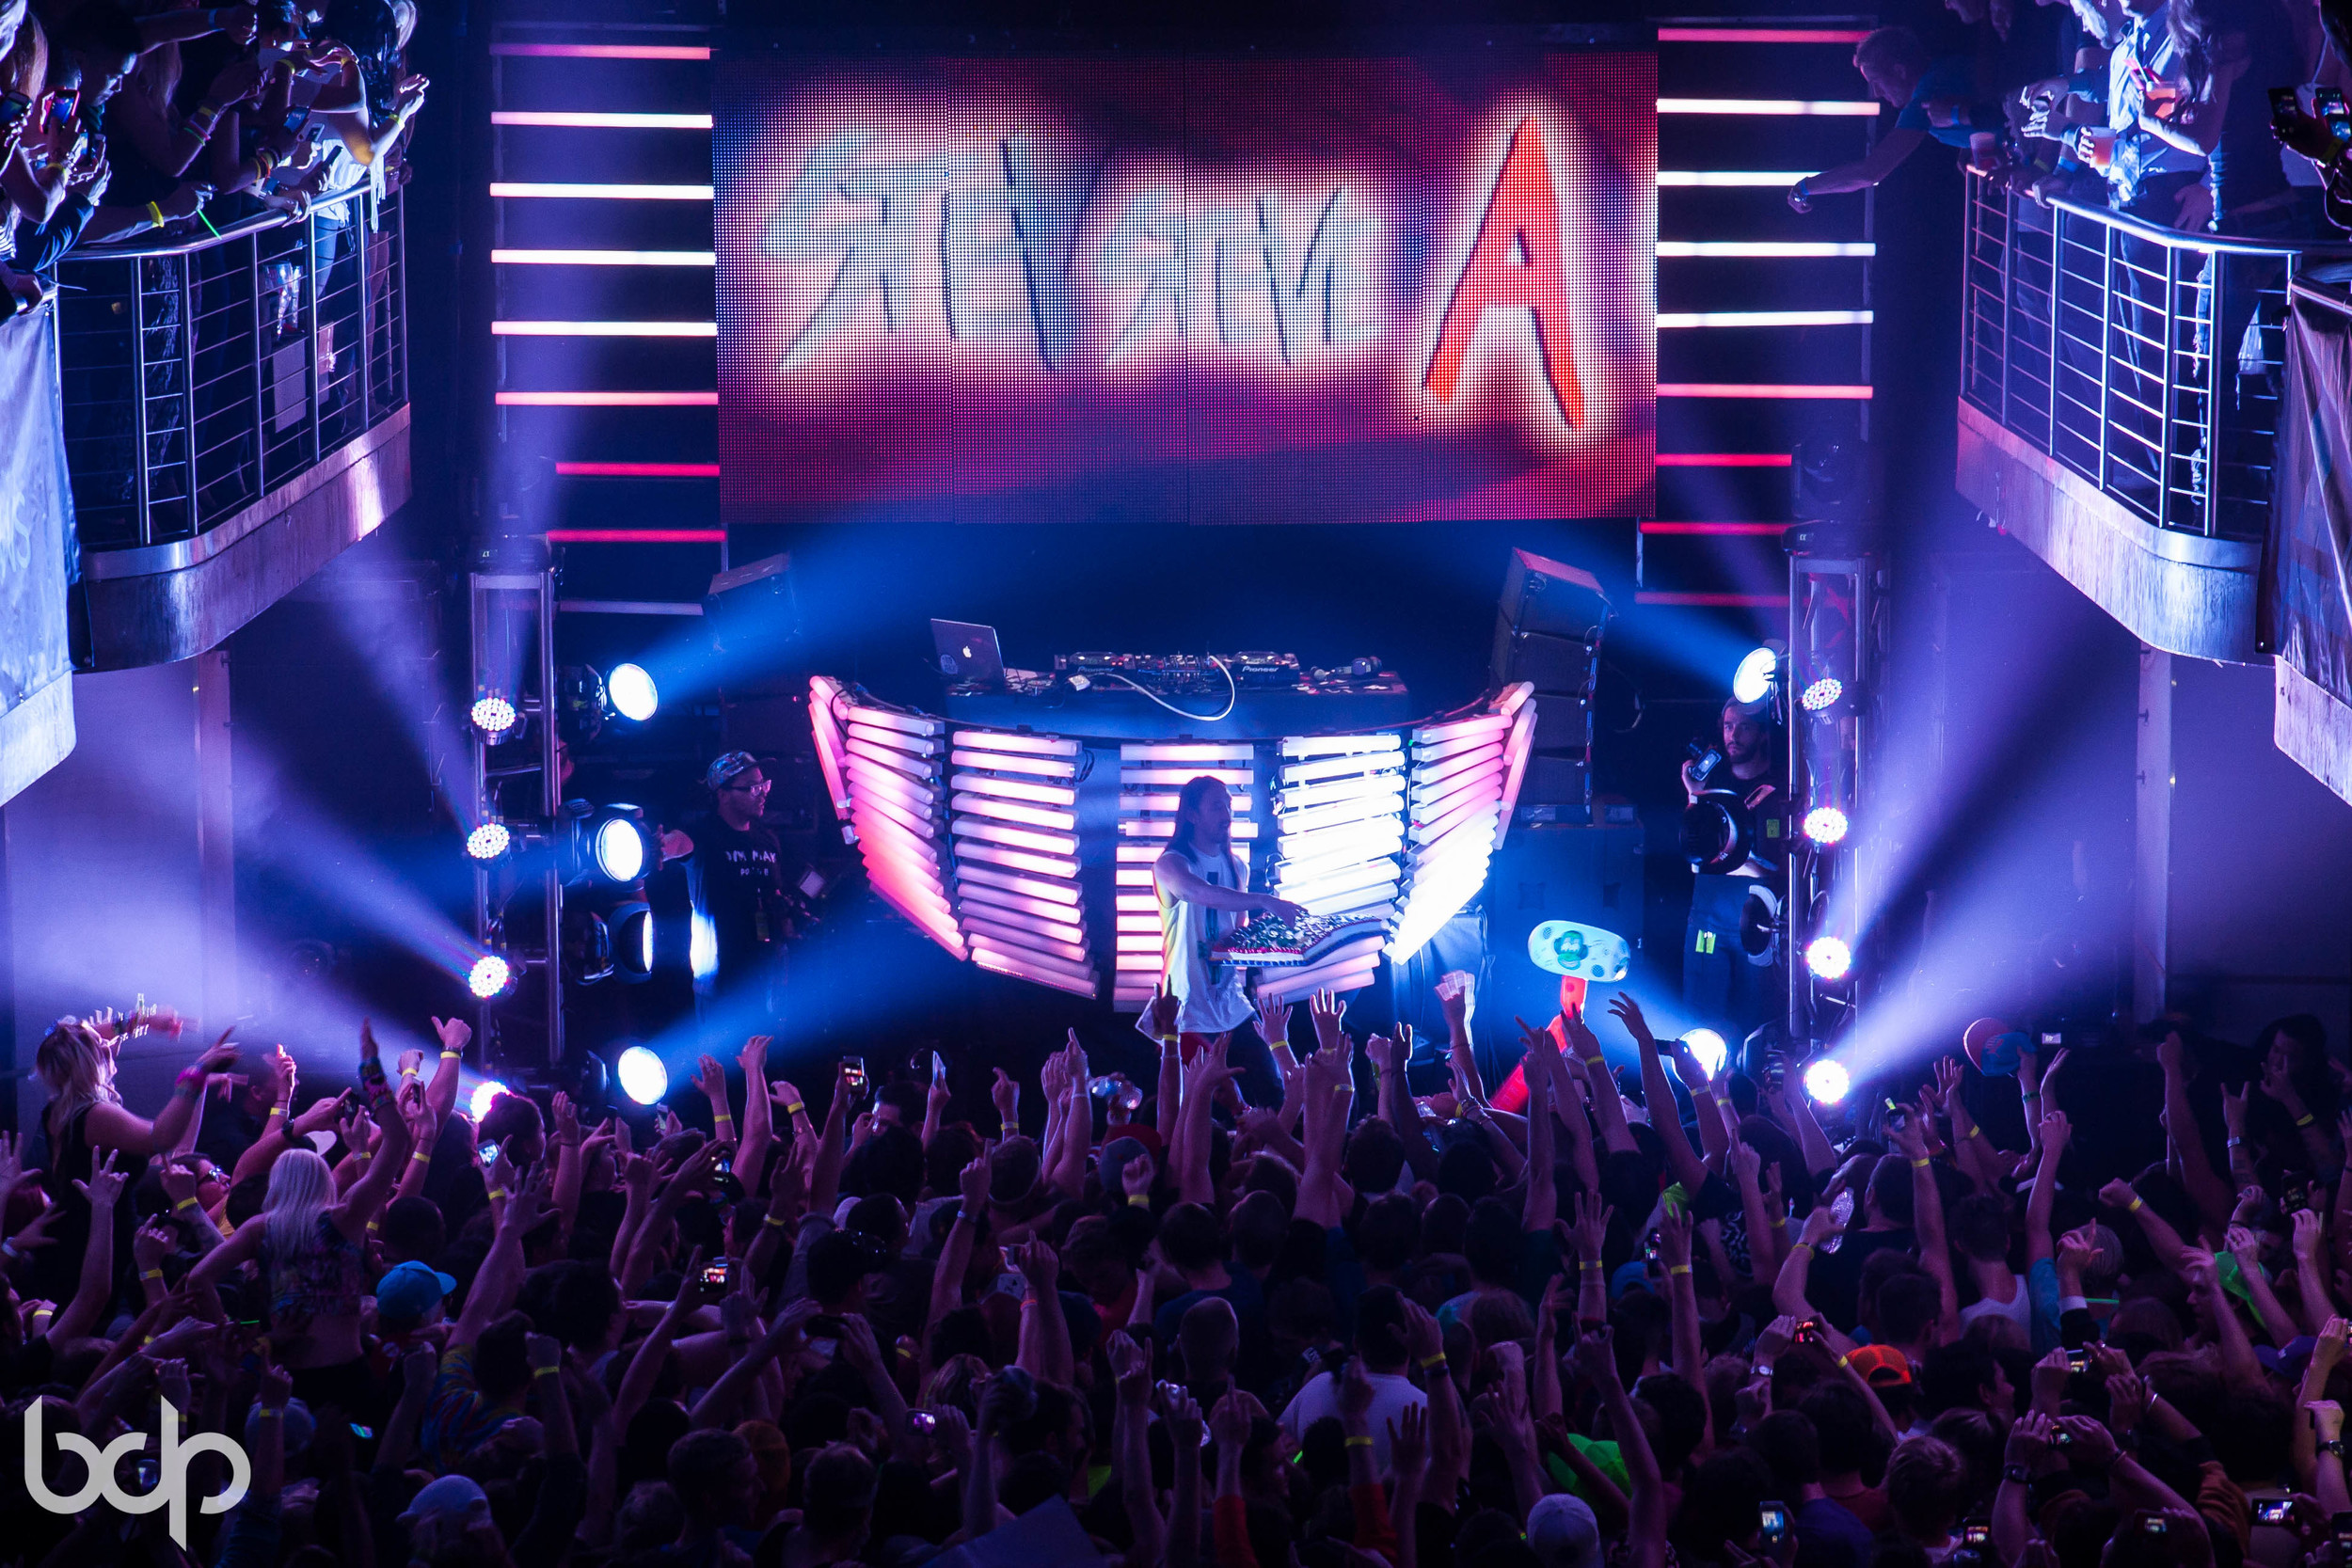 Aokify America Tour at Epic at Epic 110913 BDP-10.jpg